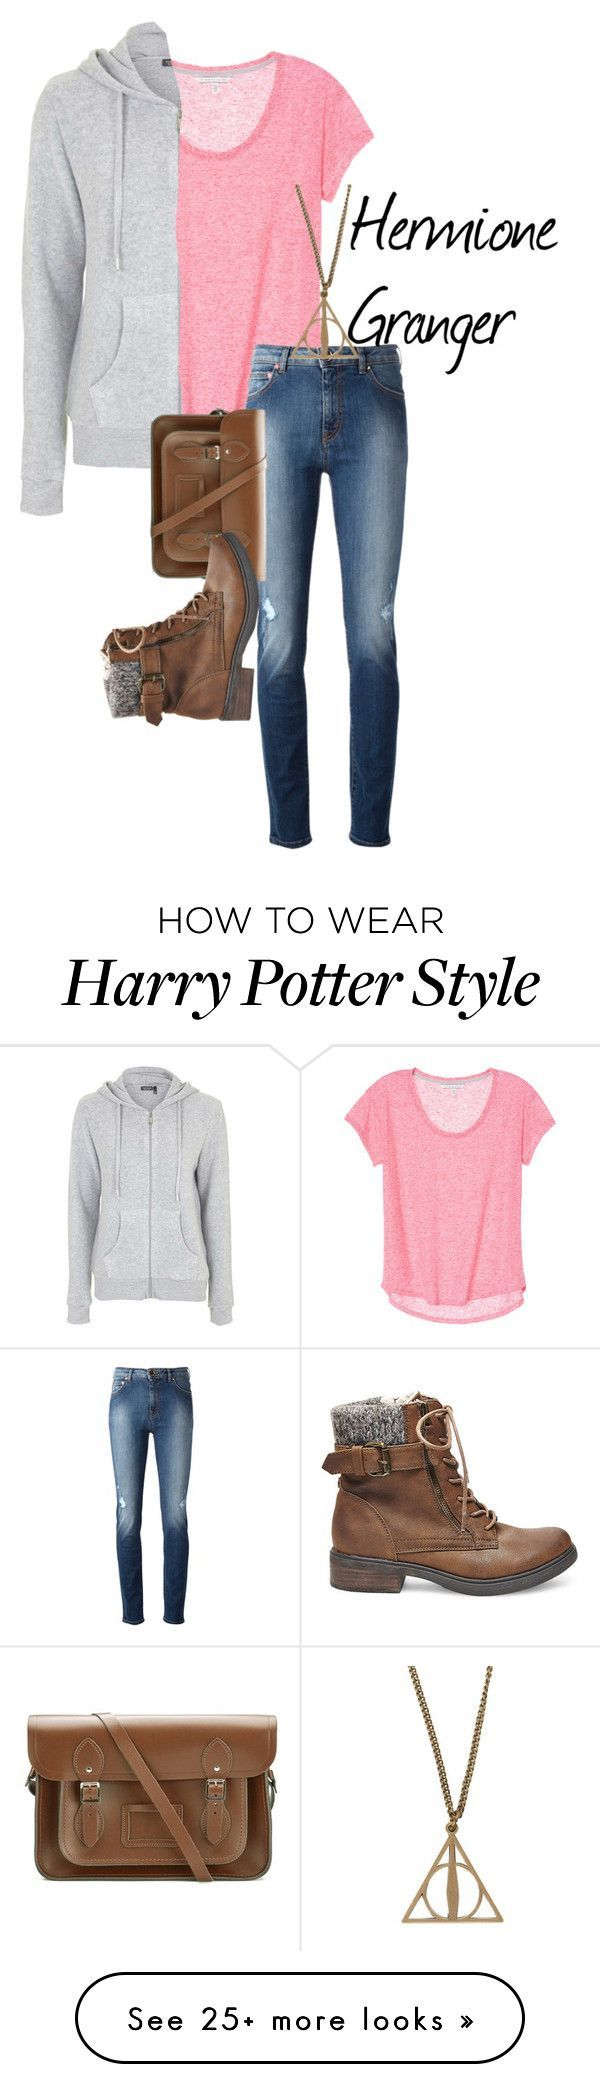 """Hermione Granger - Harry Potter"" by ava-adams123 on Polyvore featuring Topshop, Moschino, The Cambridge Satchel Company, Steve Madden and harrypotter"